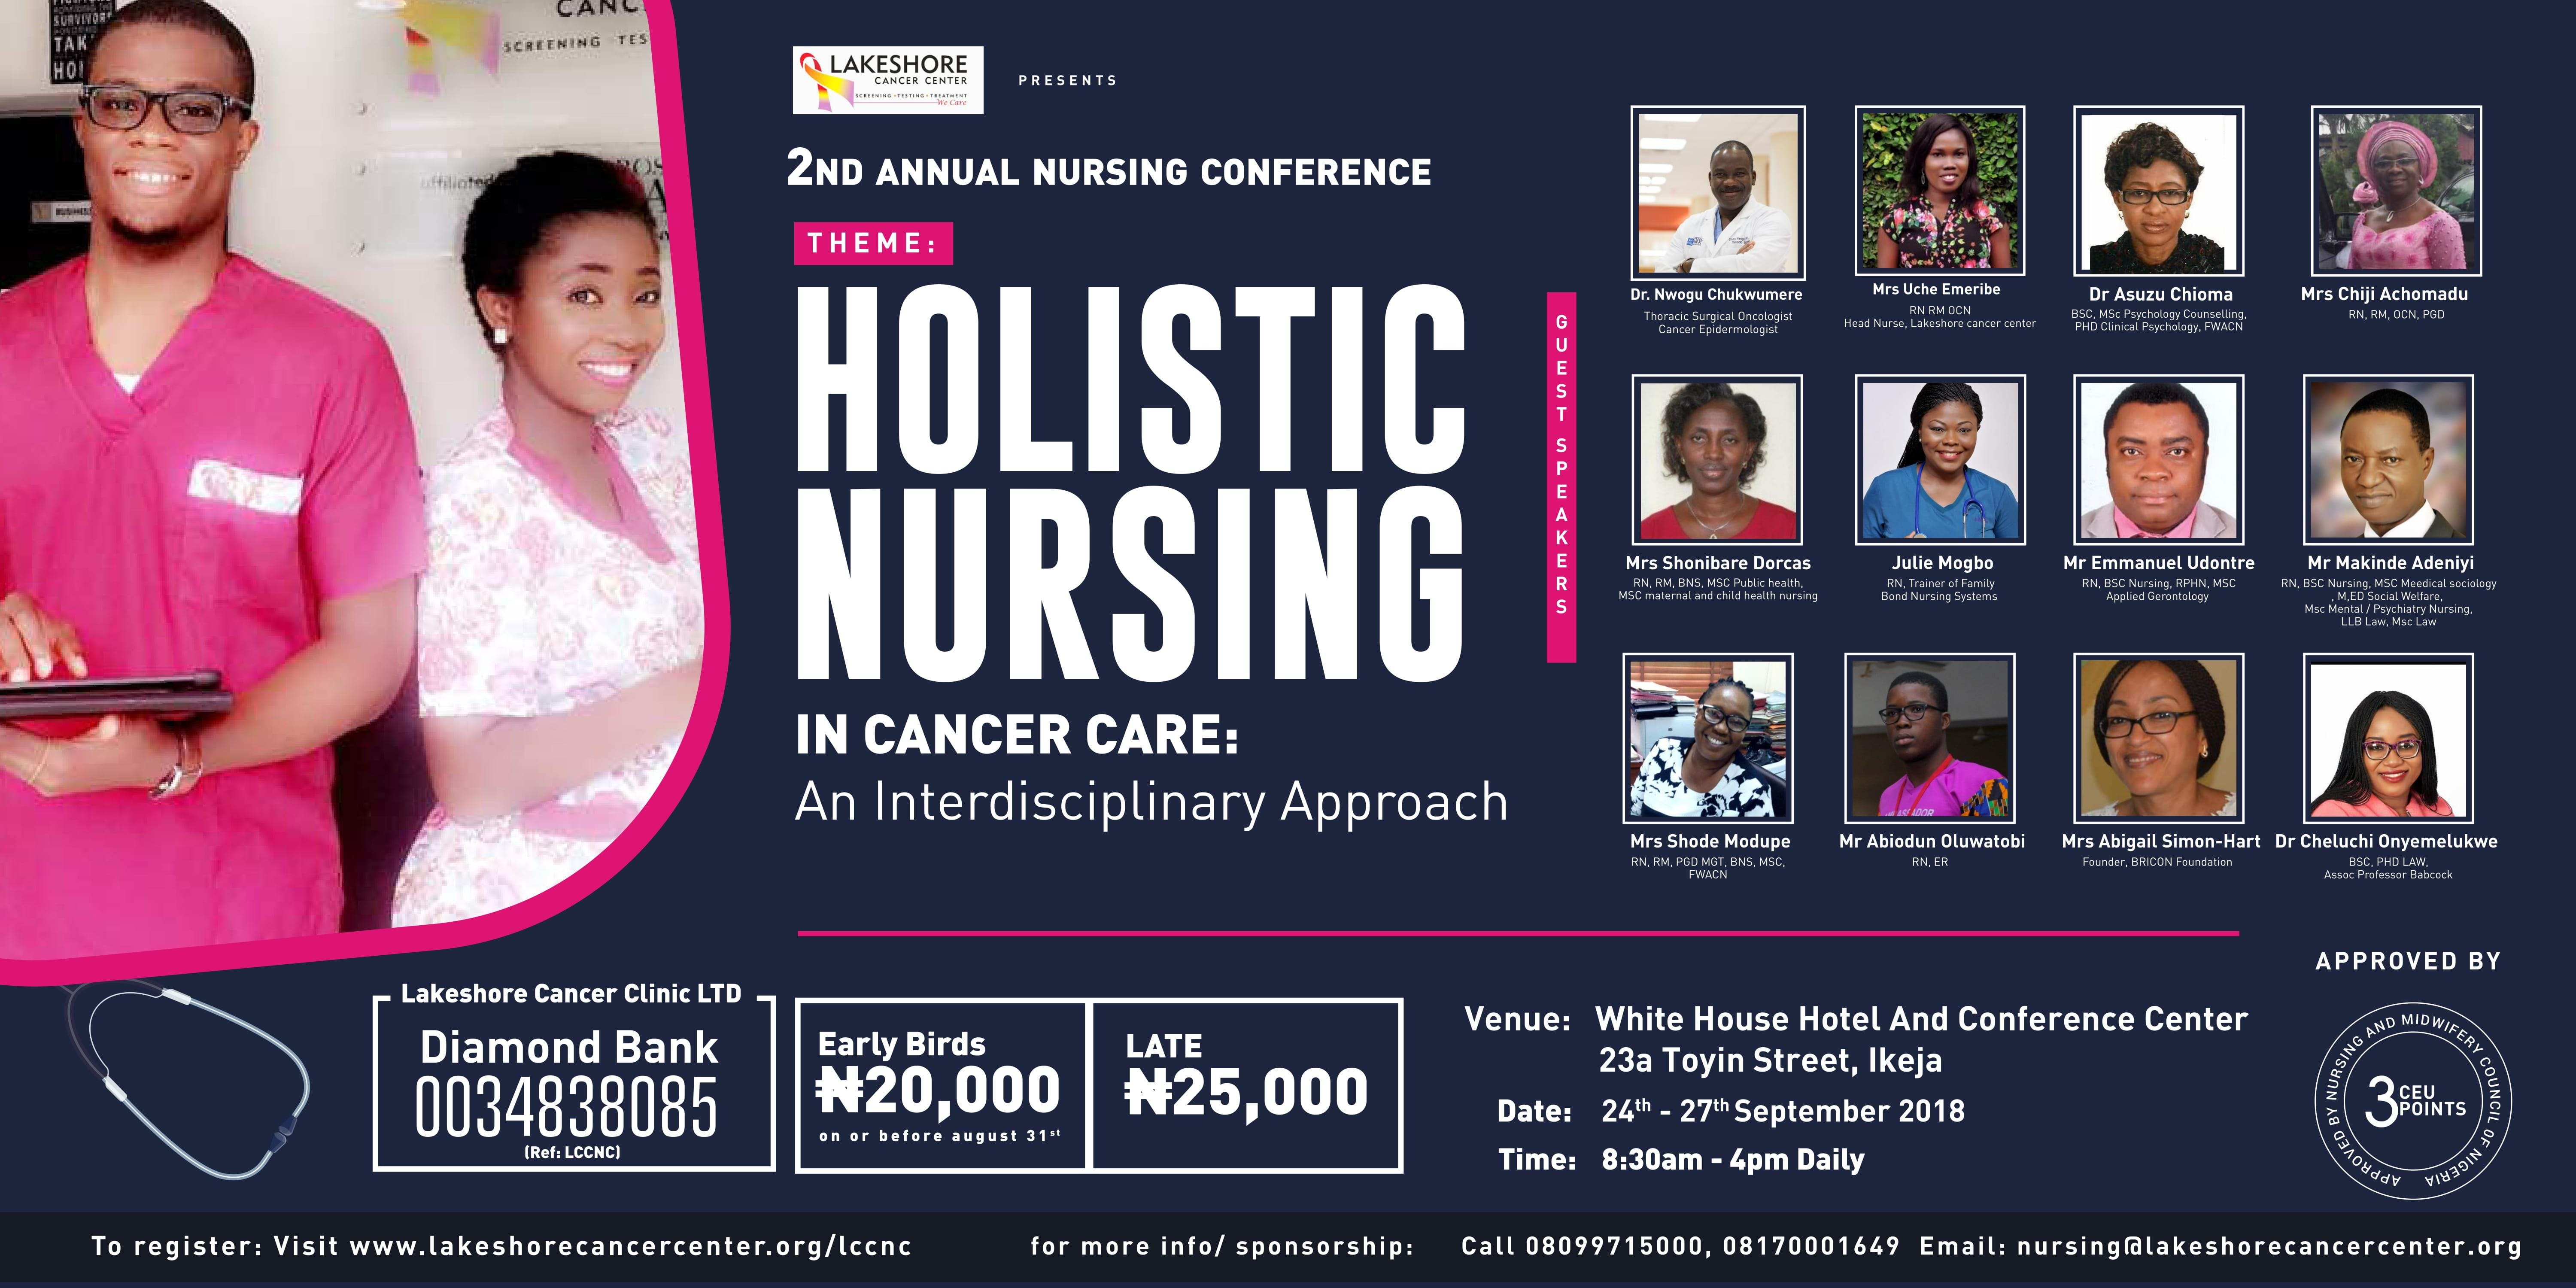 SECOND ANNUAL NURSING CONFERENCE - PAID